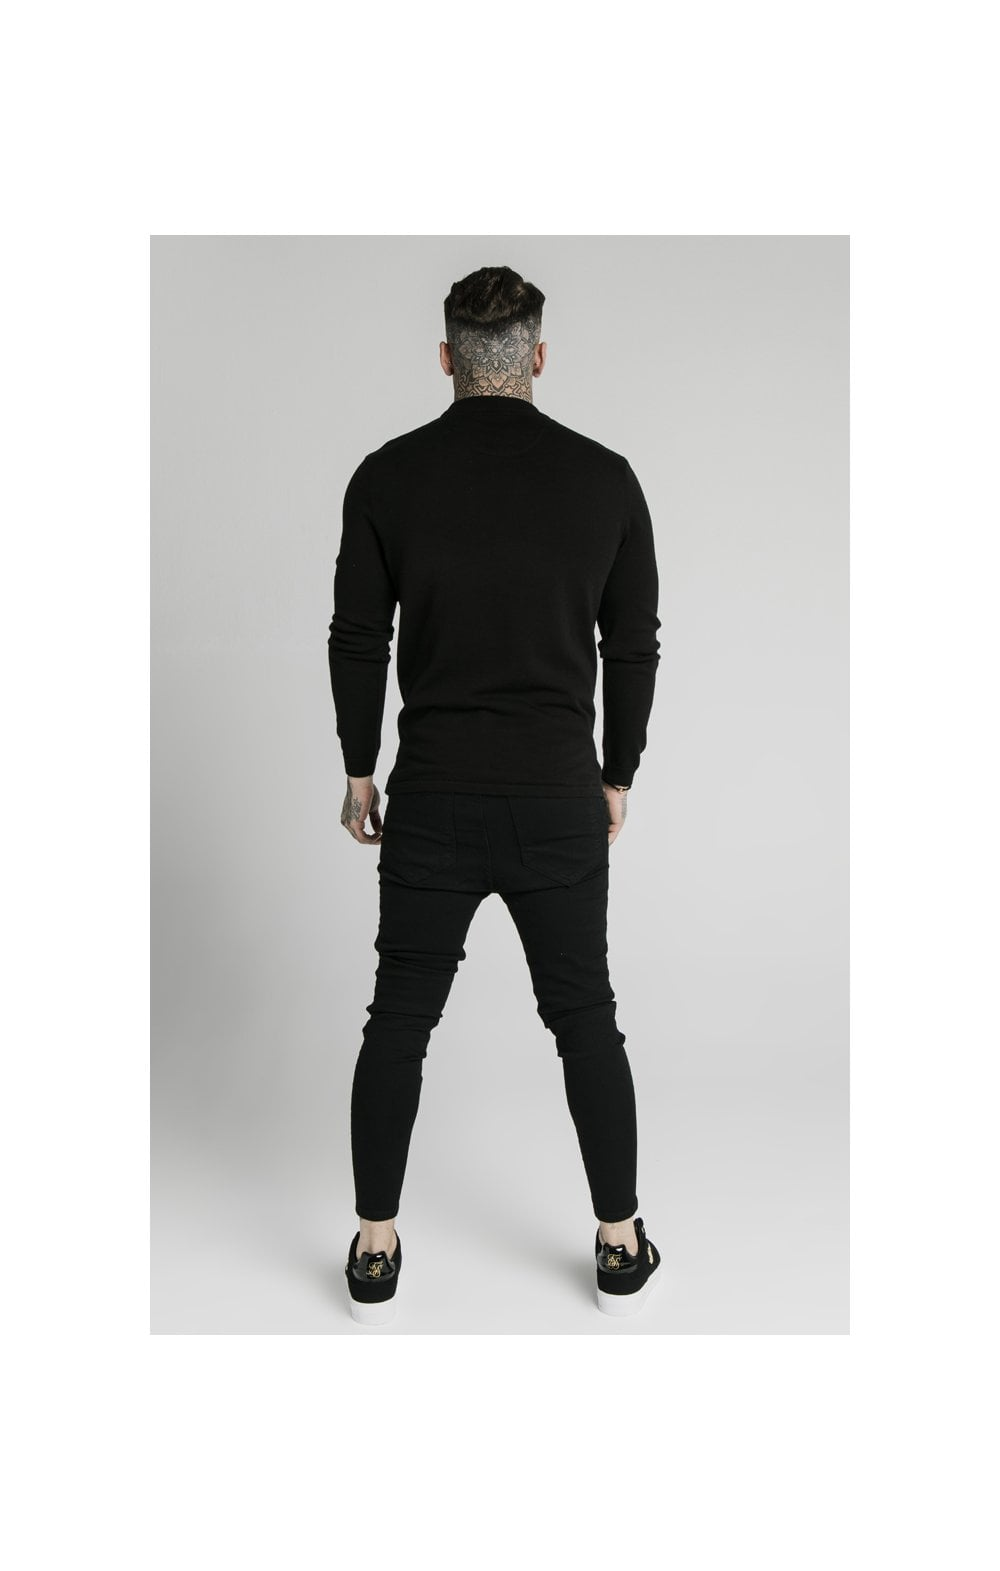 SikSilk High Neck Knitted Prestige Sweater – Black (5)